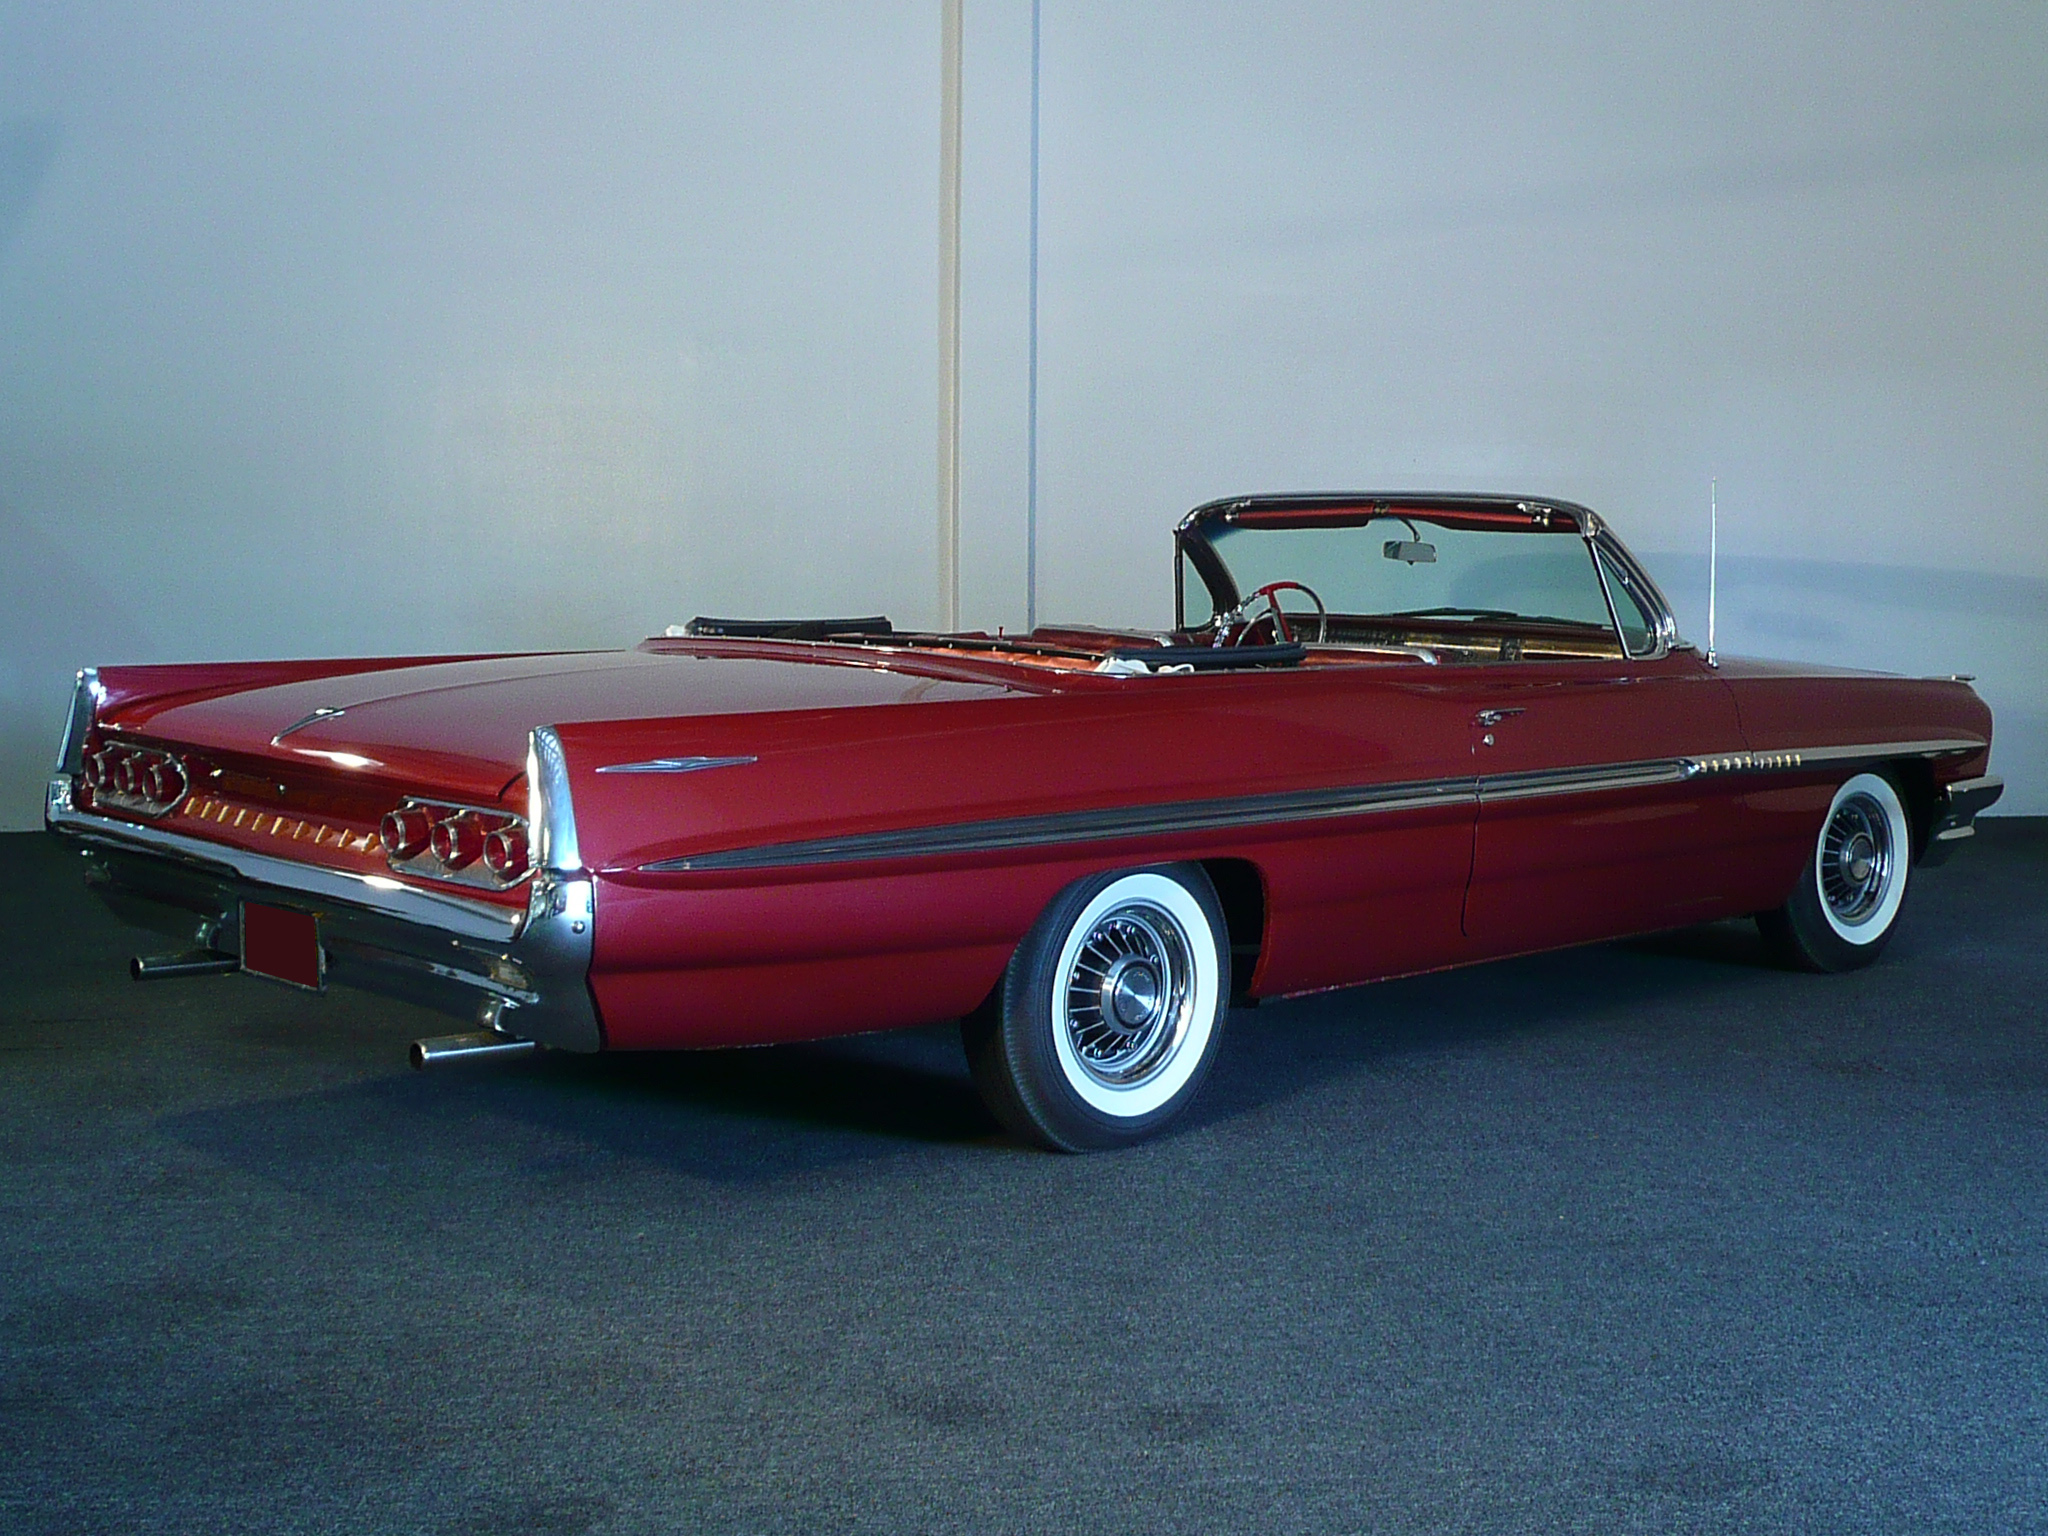 1961 PONTIAC BONNEVILLE CONVERTIBLE - Rear 3/4 - 80938